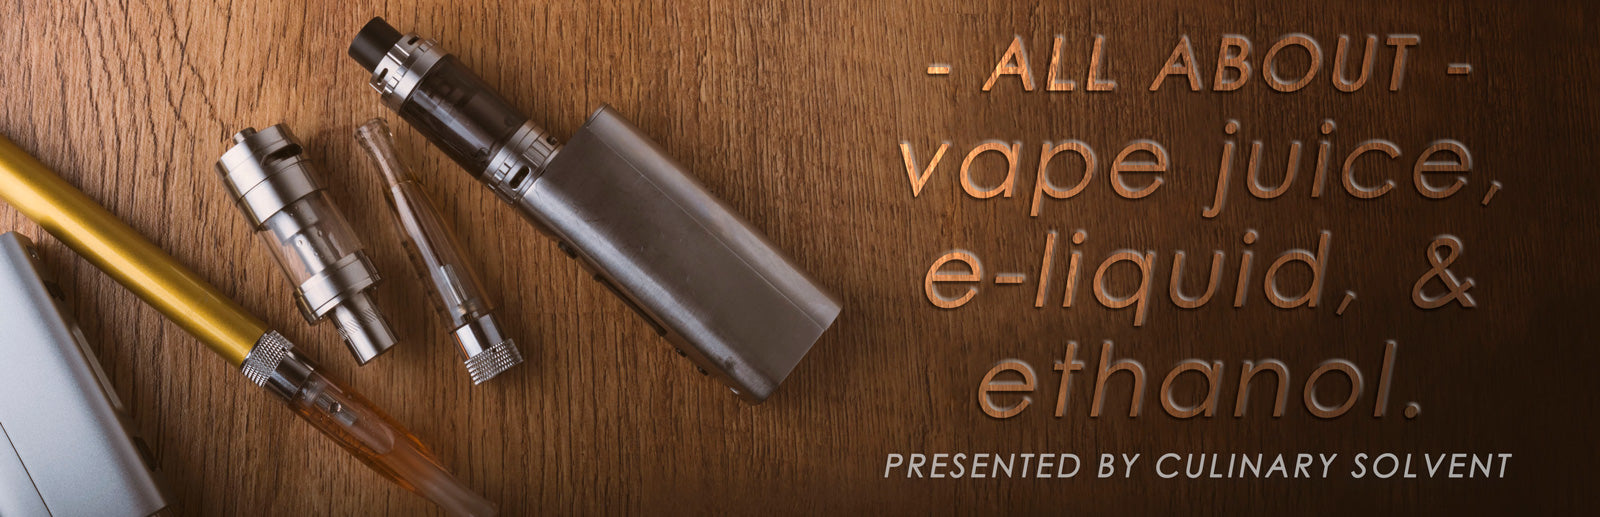 All about vape juice, e-liquid, and ethanol - Culinary Solvent